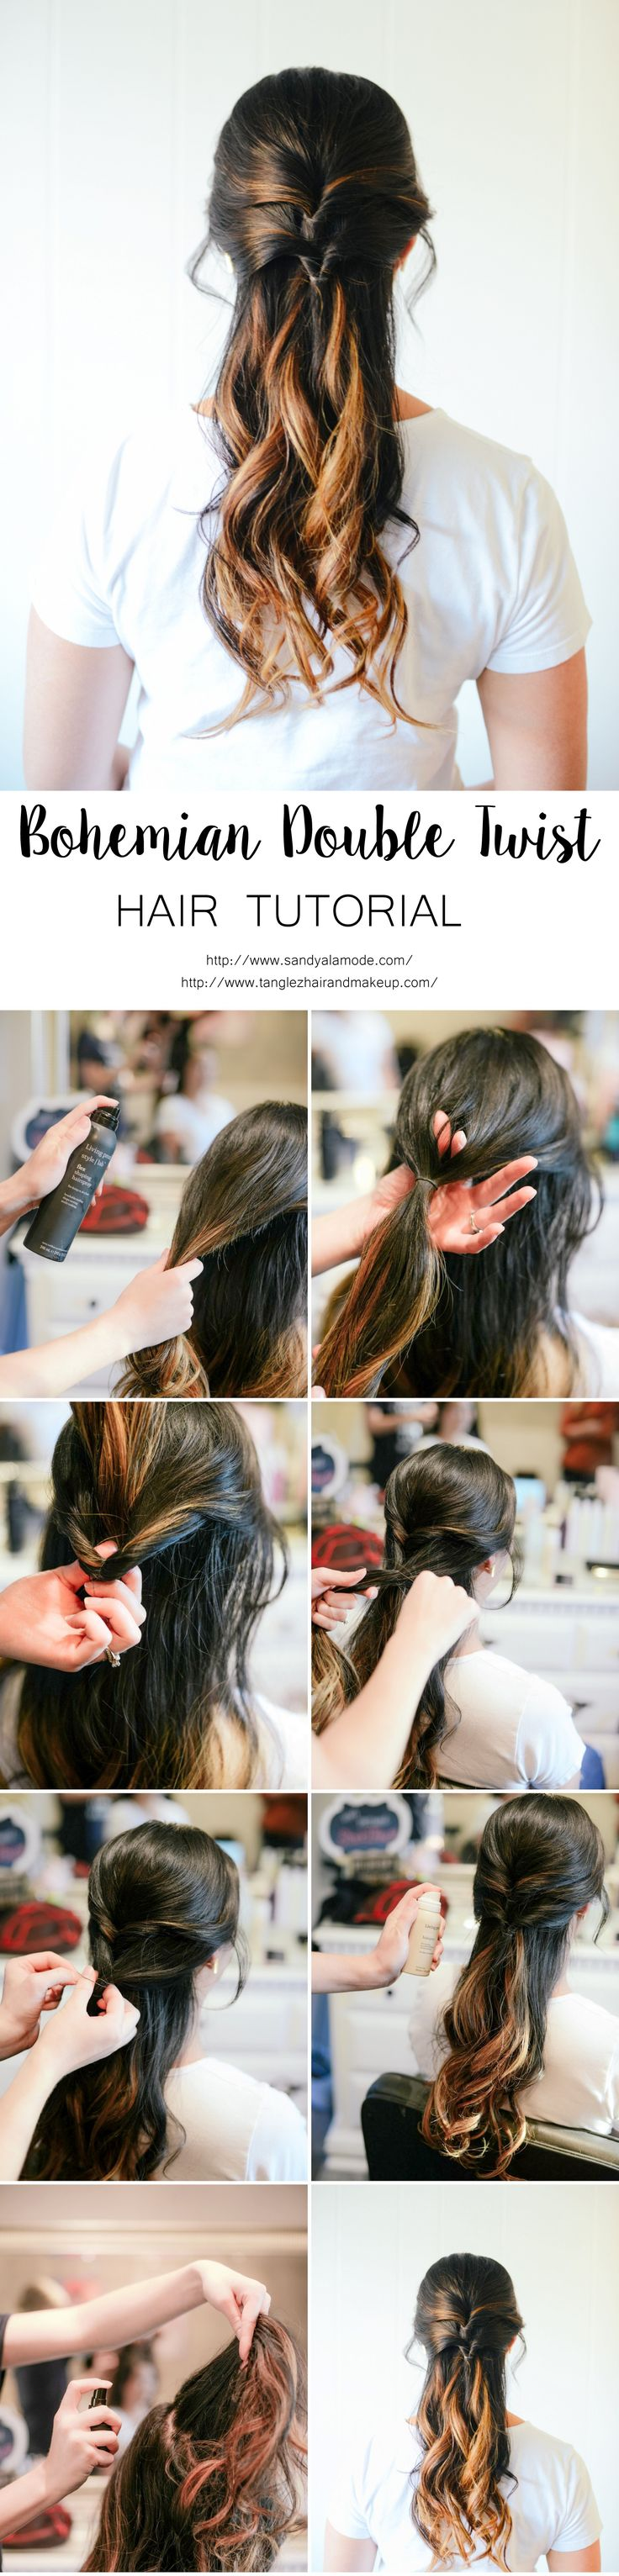 Make your hairstyles last longer with Living Proof + a Bohemian Double Twist Hair Tutorial!